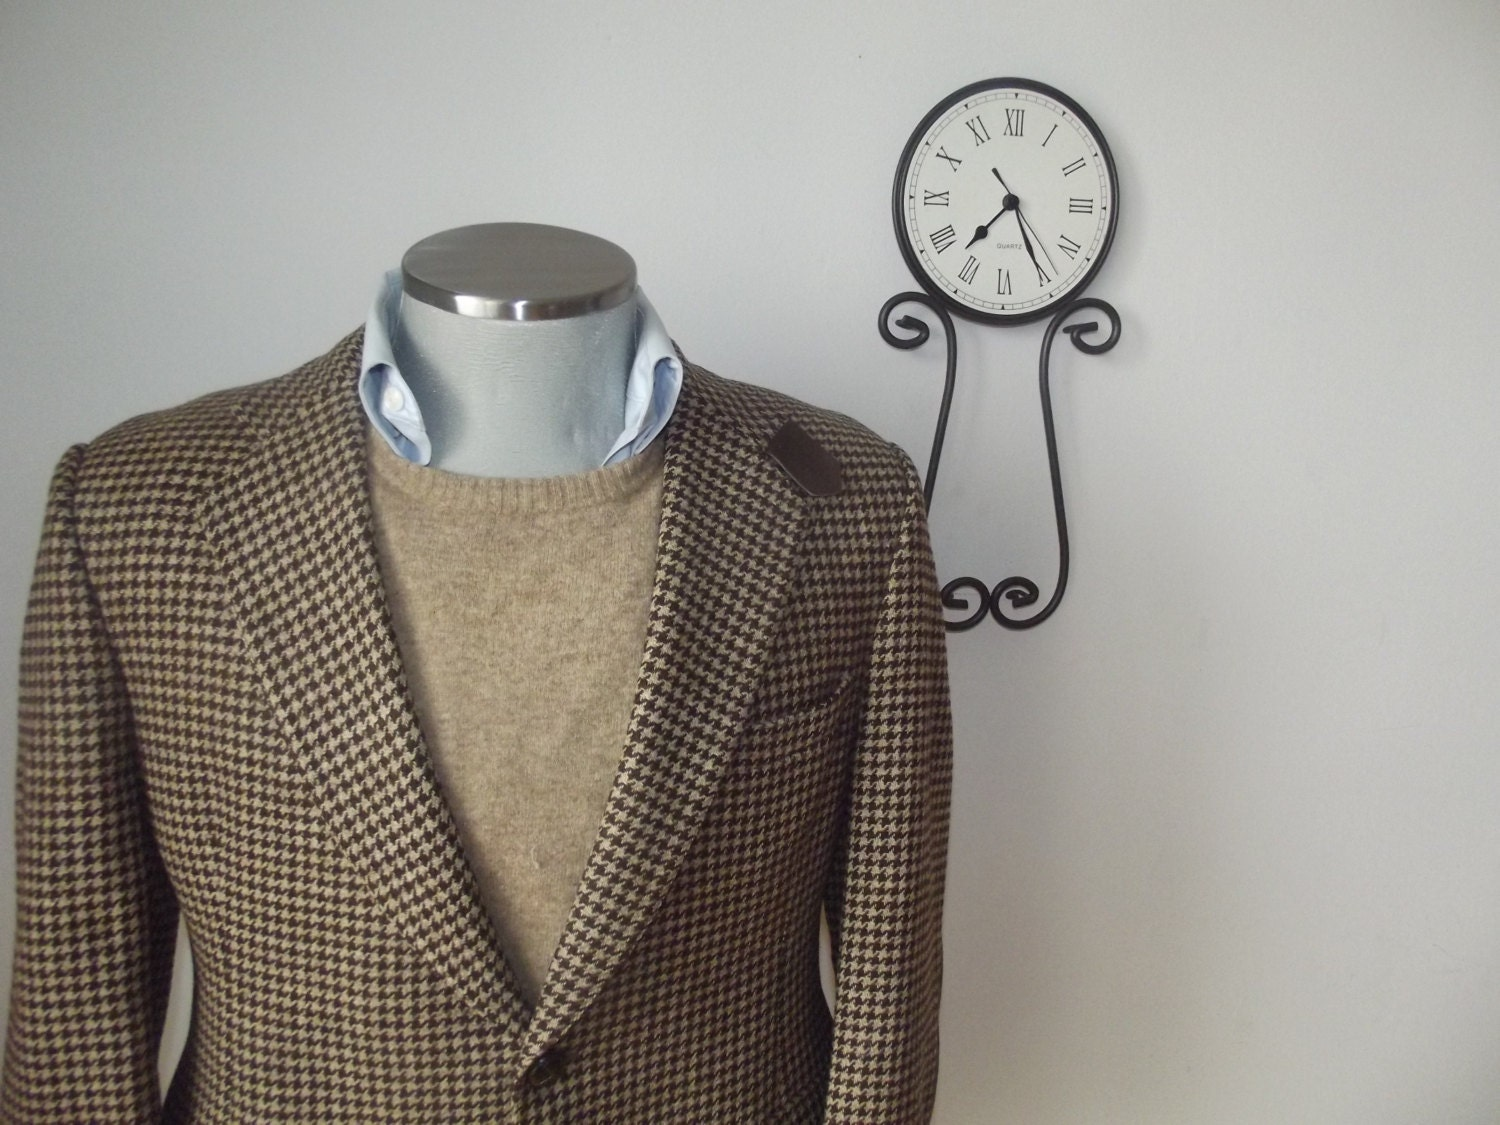 1960s CHARLES CHRISTIAN Houndstooth Tweed Suit Jacket with